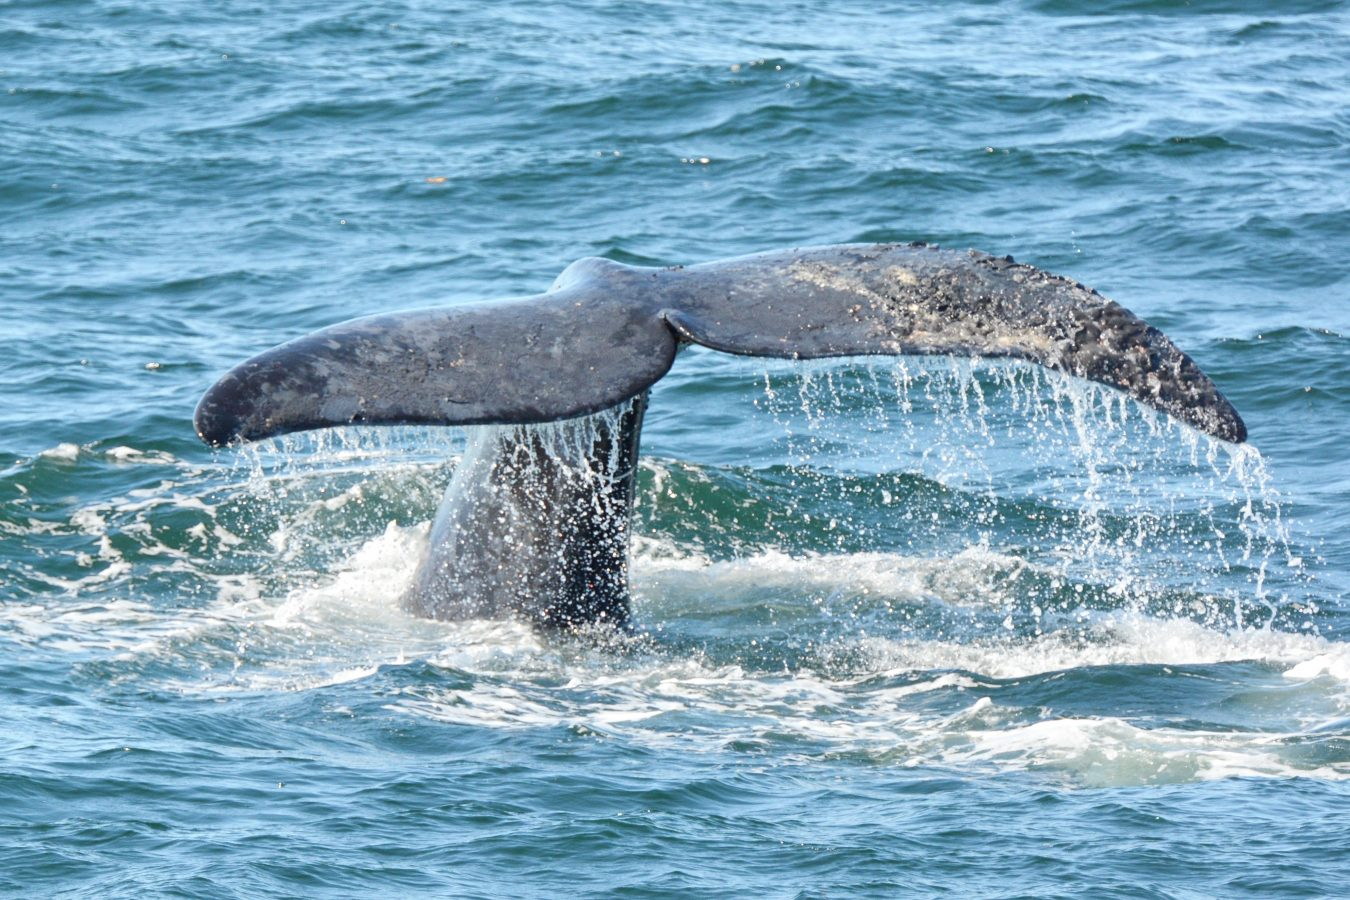 Rough and mottle skin is seen the fluke of a North Atlantic right whale.